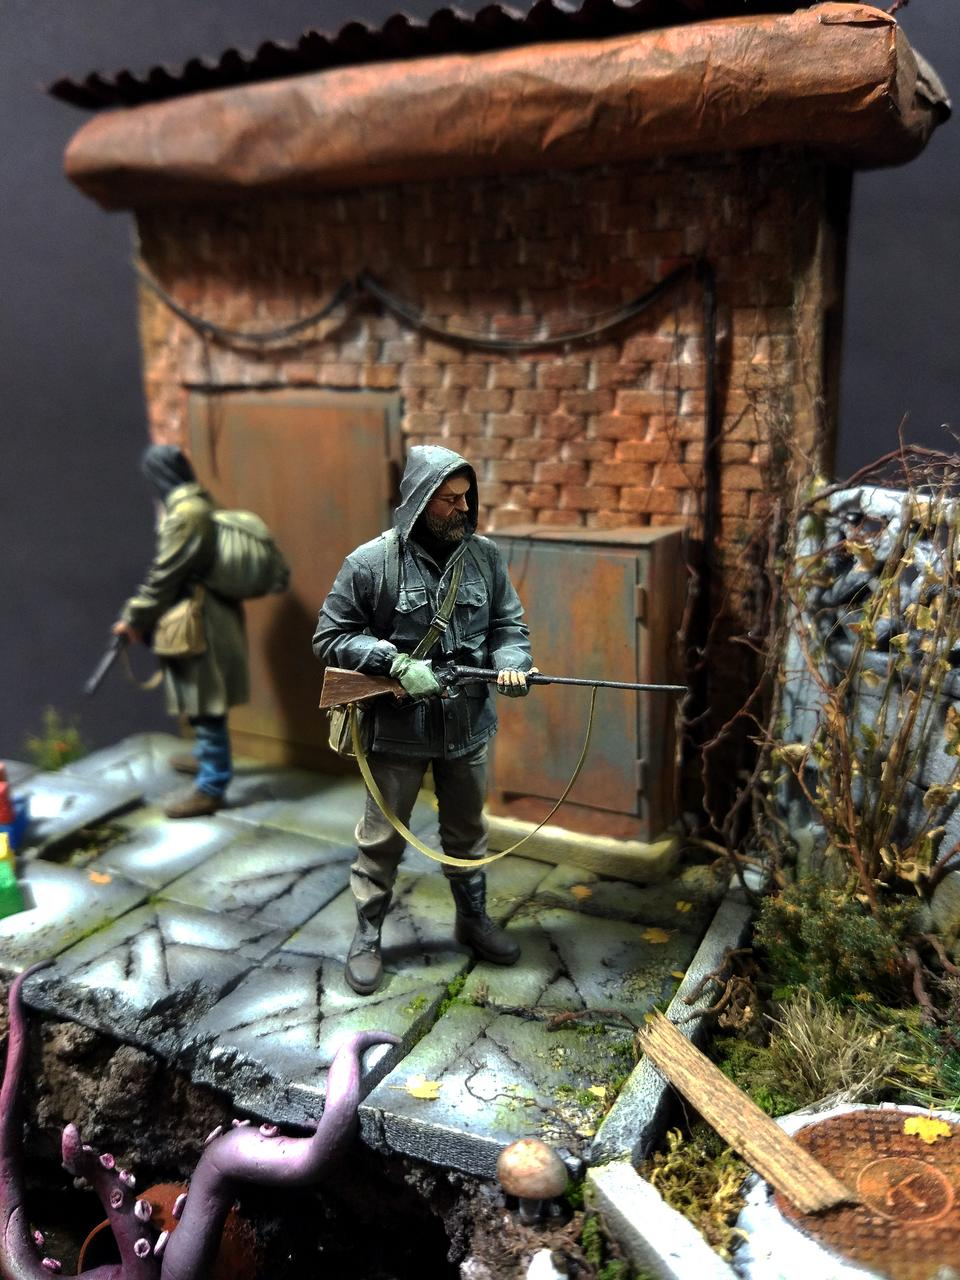 Dioramas and Vignettes: New undiscovered world, photo #4